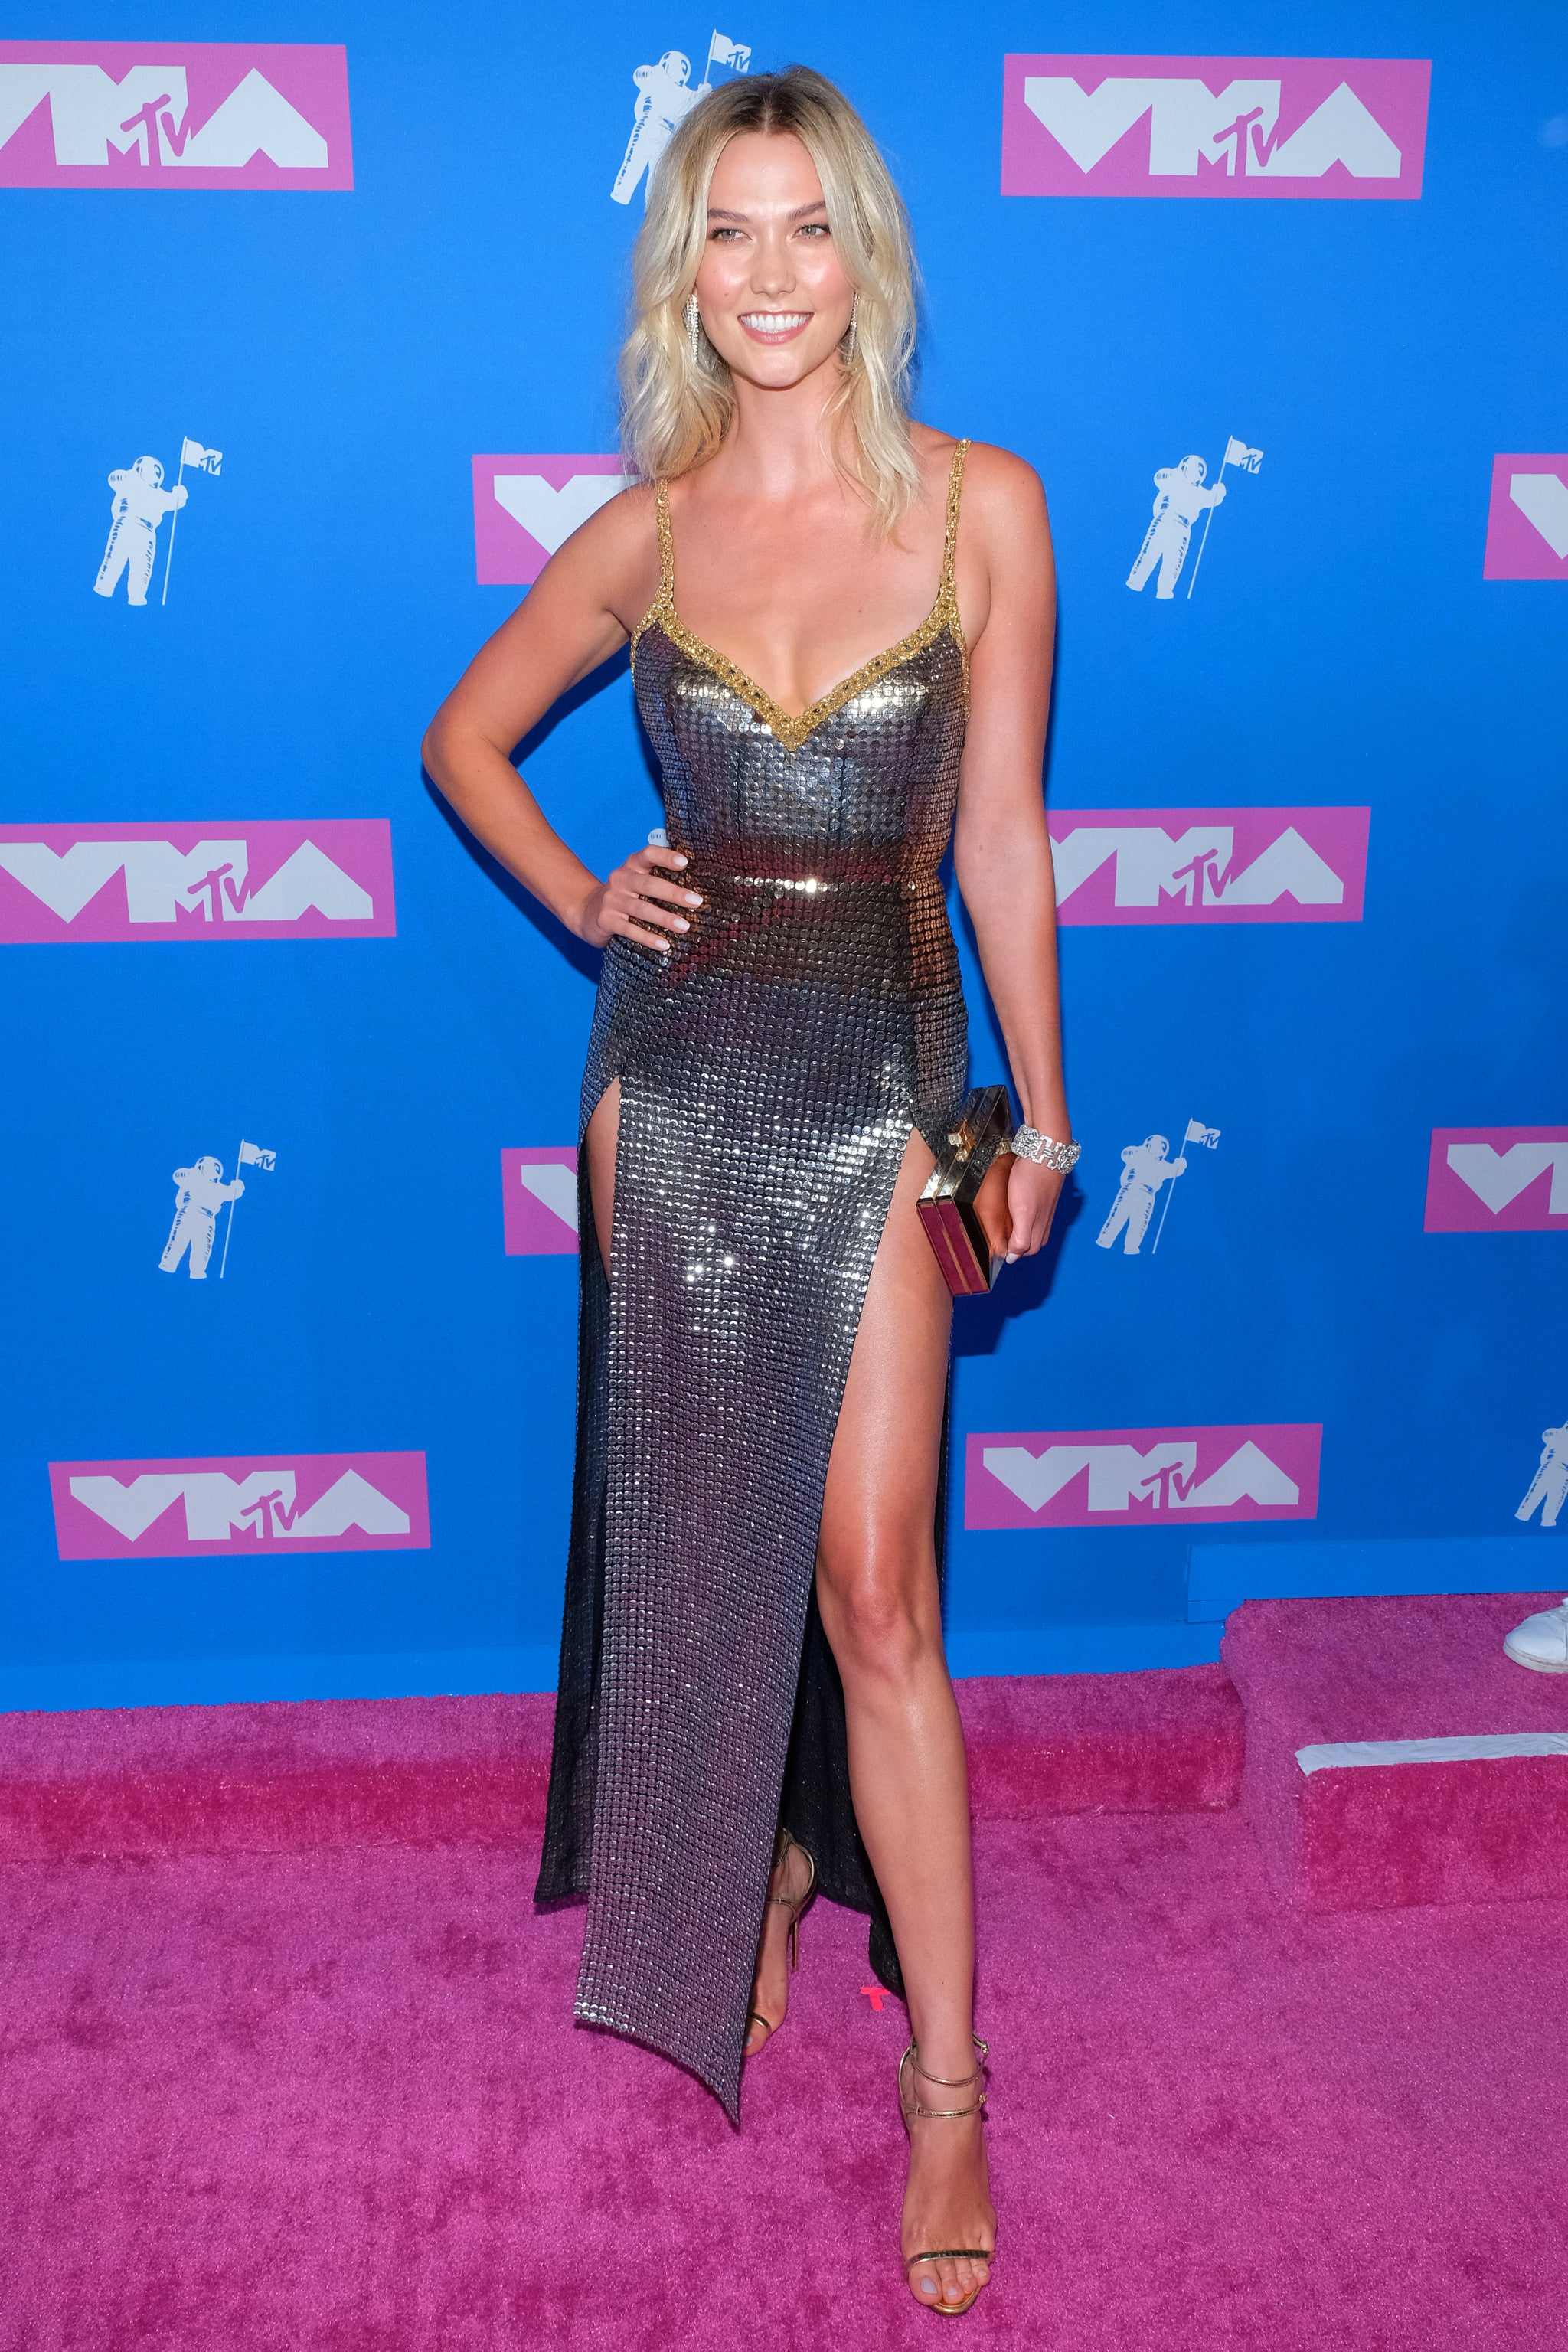 Karlie Kloss The Vmas Brought A Heavy Dose Of Sexy To The Red Carpet See The Hottest Dresses Popsugar Fashion Photo 15